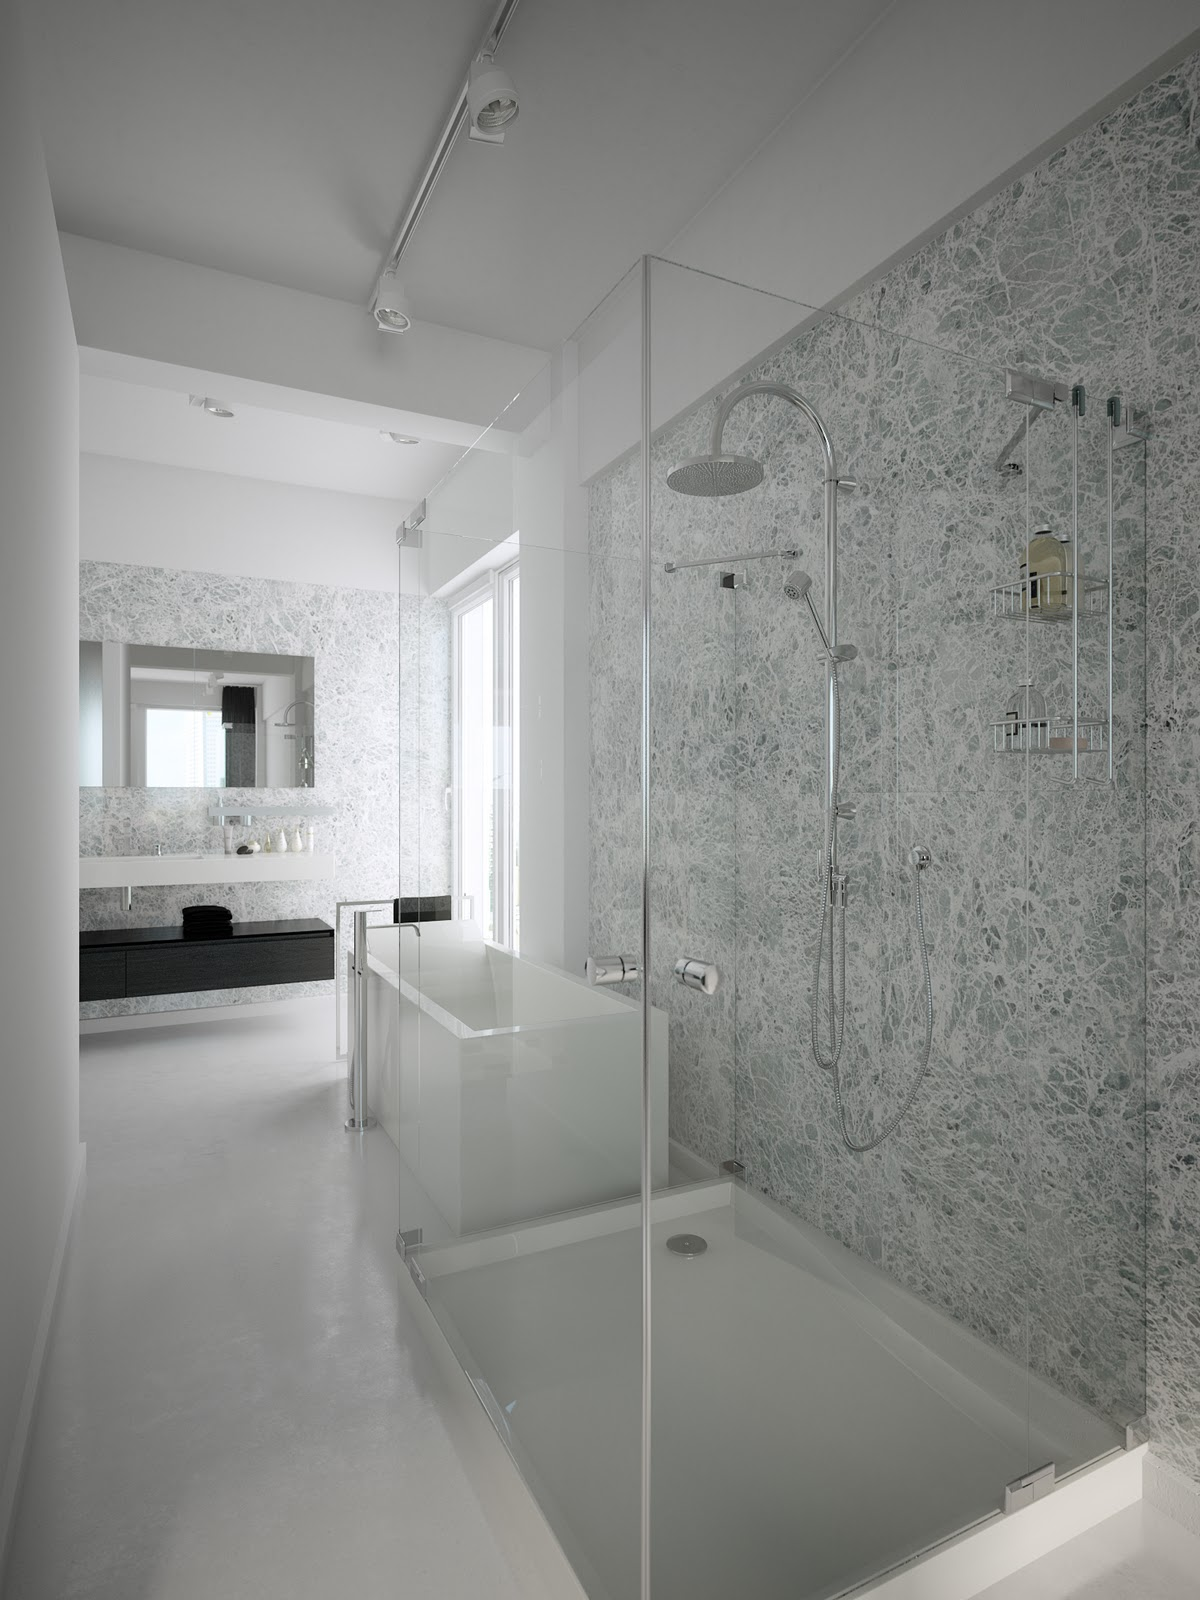 Black white shower room interior design ideas for Room design with bathroom